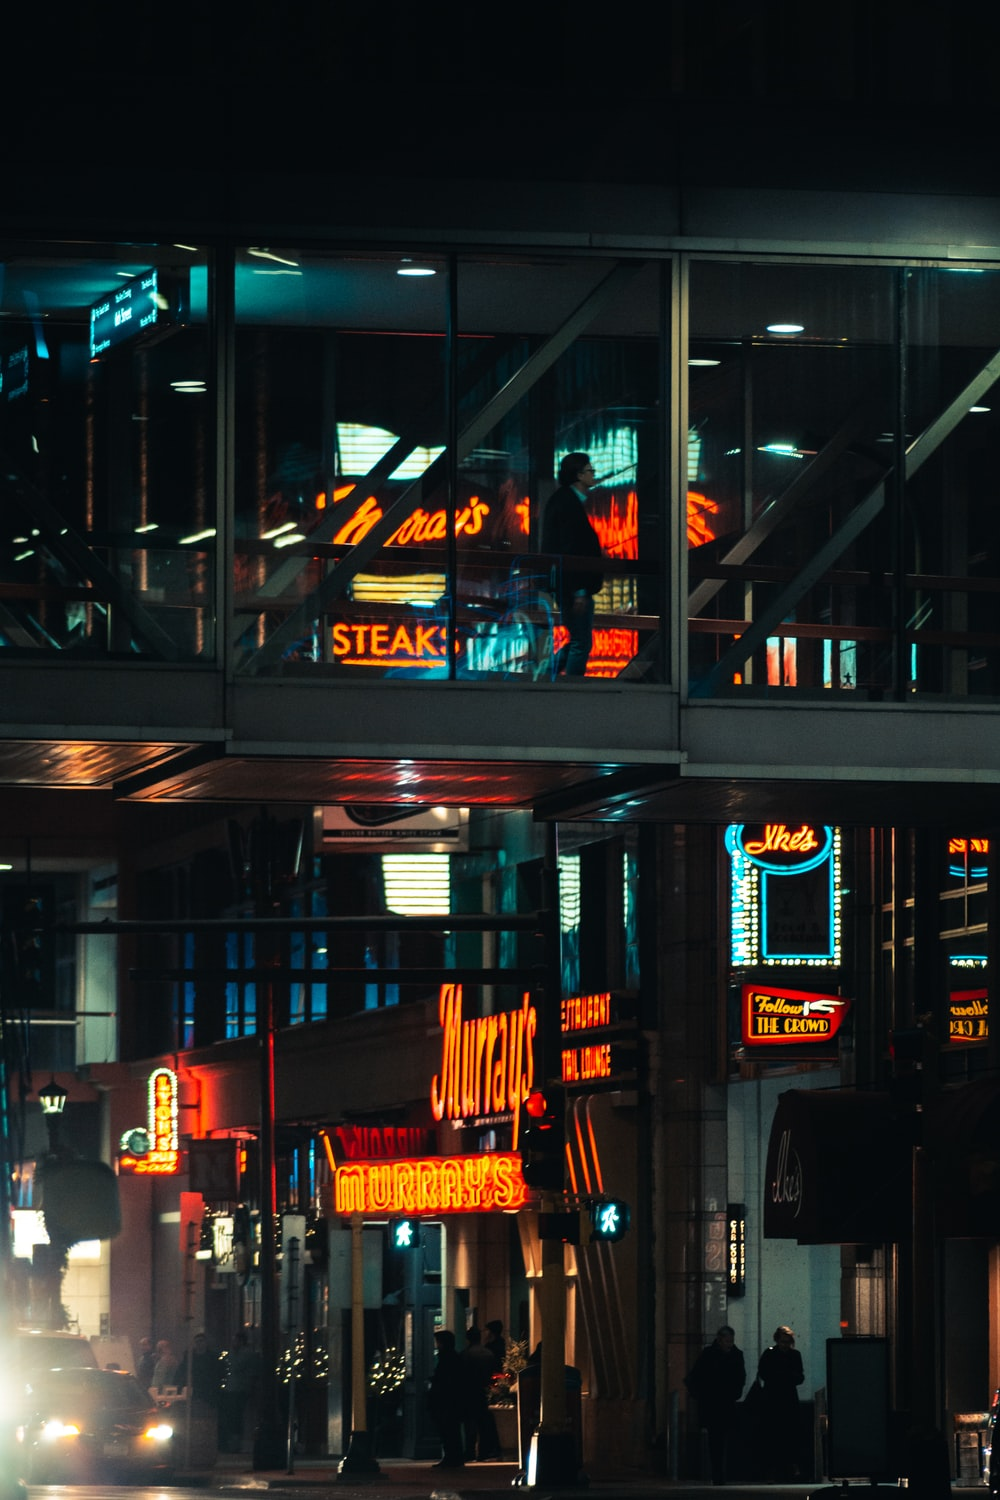 food store during night